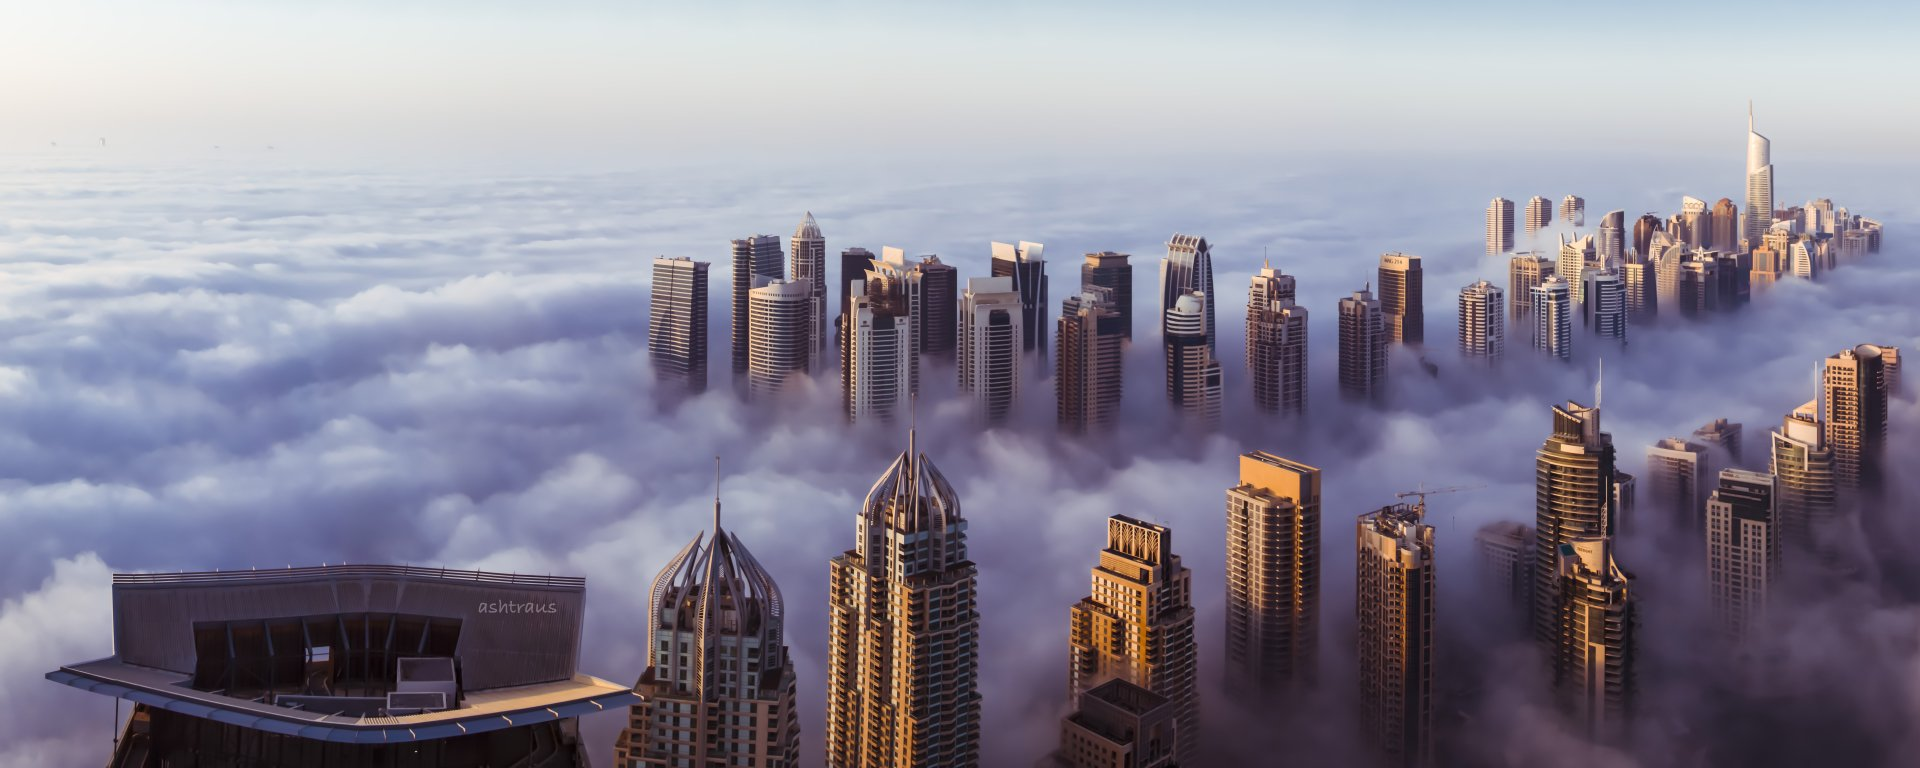 Man Made - Dubai Morning Fog Panorama United Arab Emirates Cloud Sheikh Zayed Avenue Wallpaper